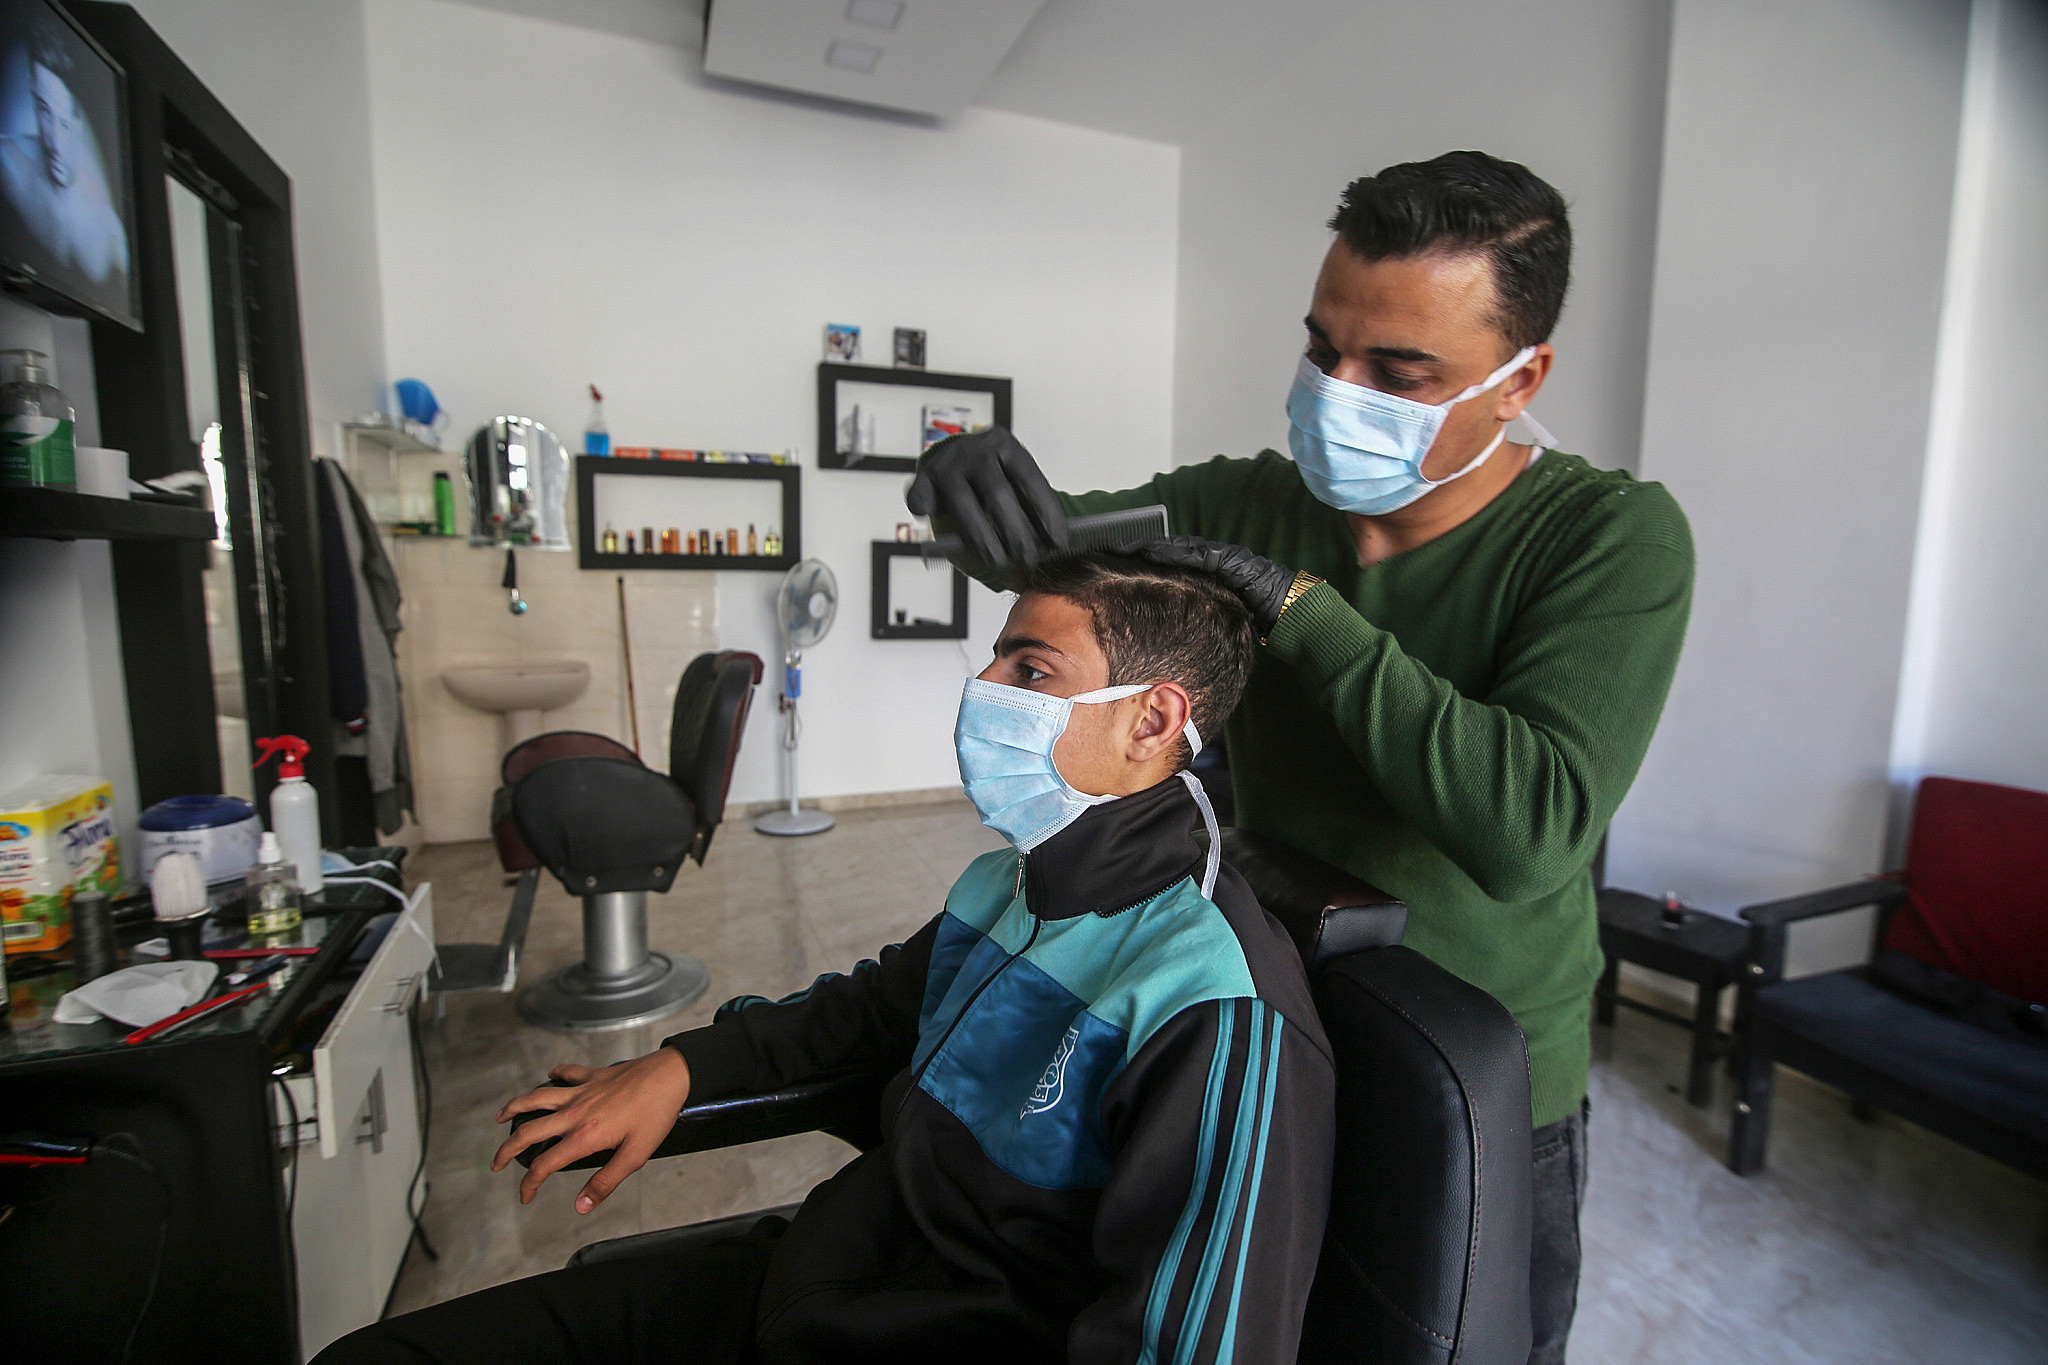 Palestinians wear face masks for fear of the coronavirus at a barbershop in Khan Yunis, southern Gaza Strip, on March 7, 2020. (Abed Rahim Khatib/Flash90)